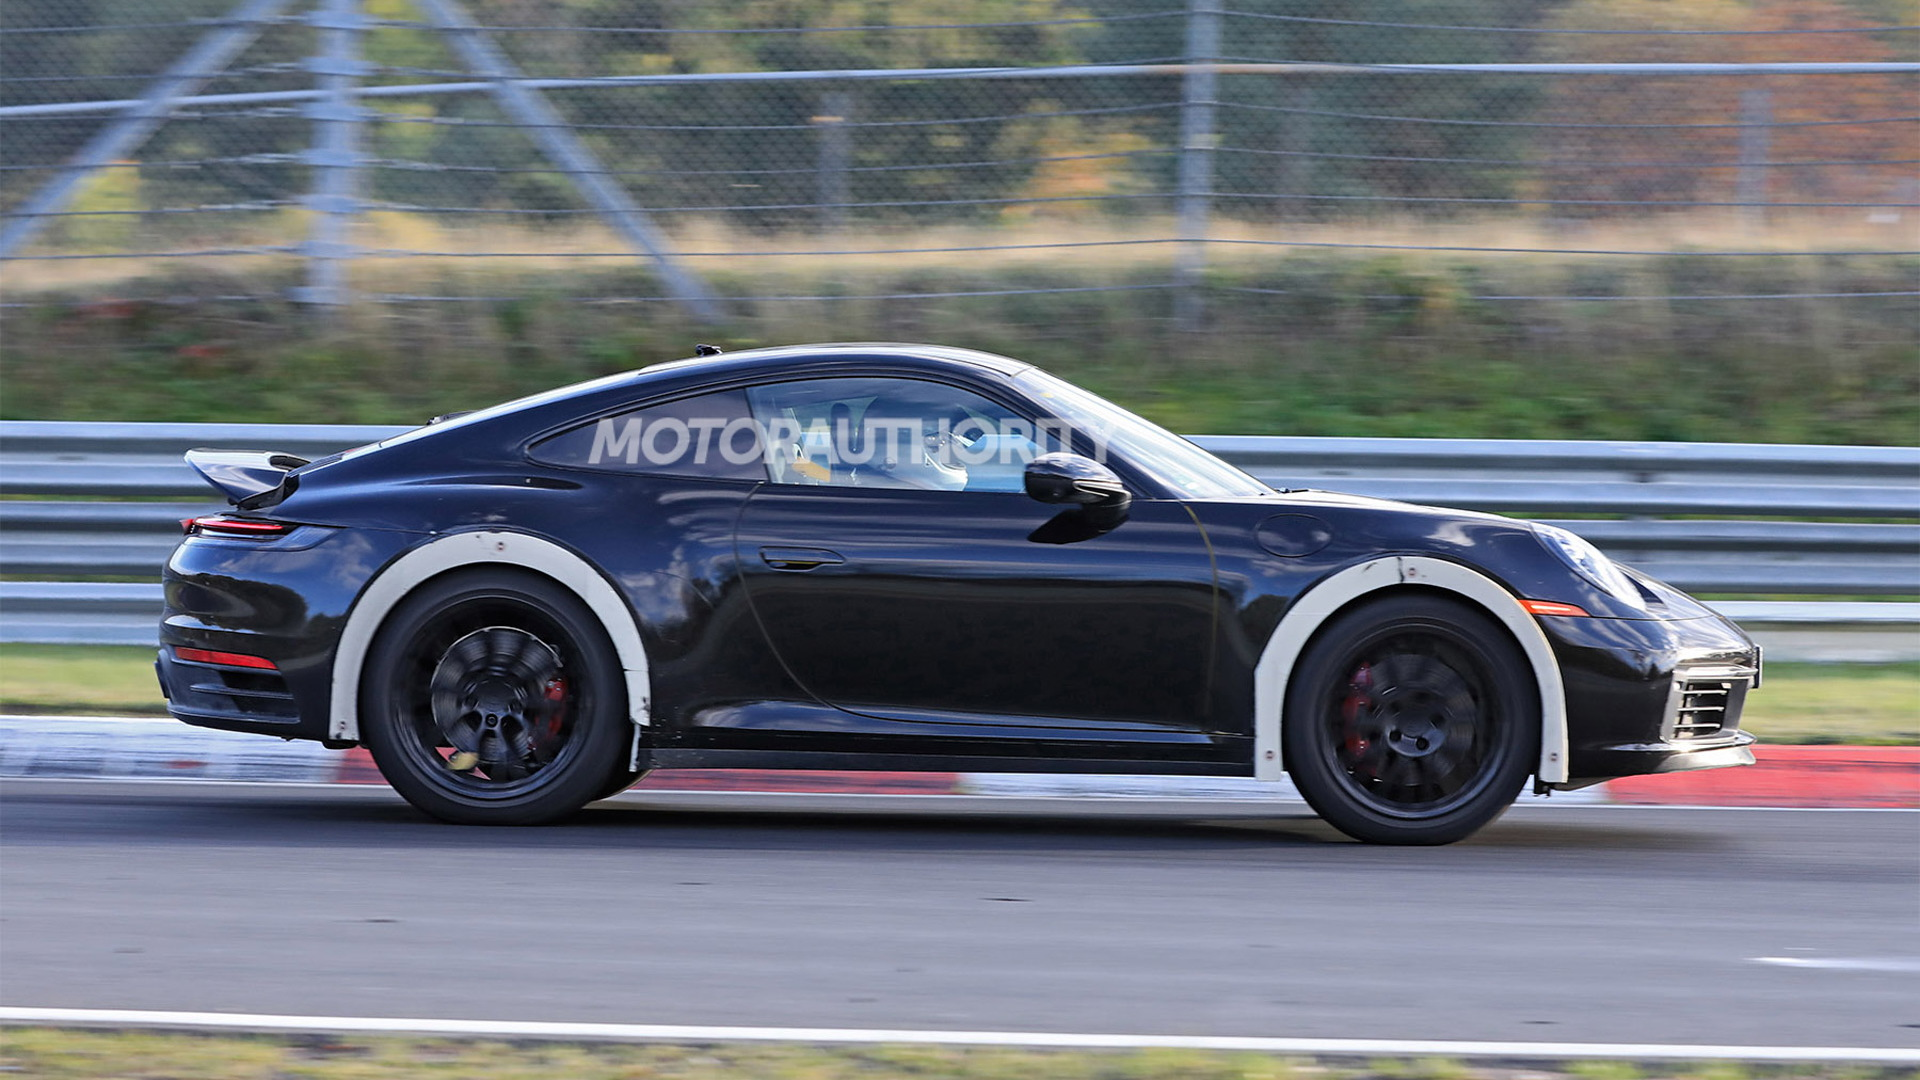 High-riding Porsche 911 prototype spy shots - Photo credit: S. Baldauf/SB-Medien